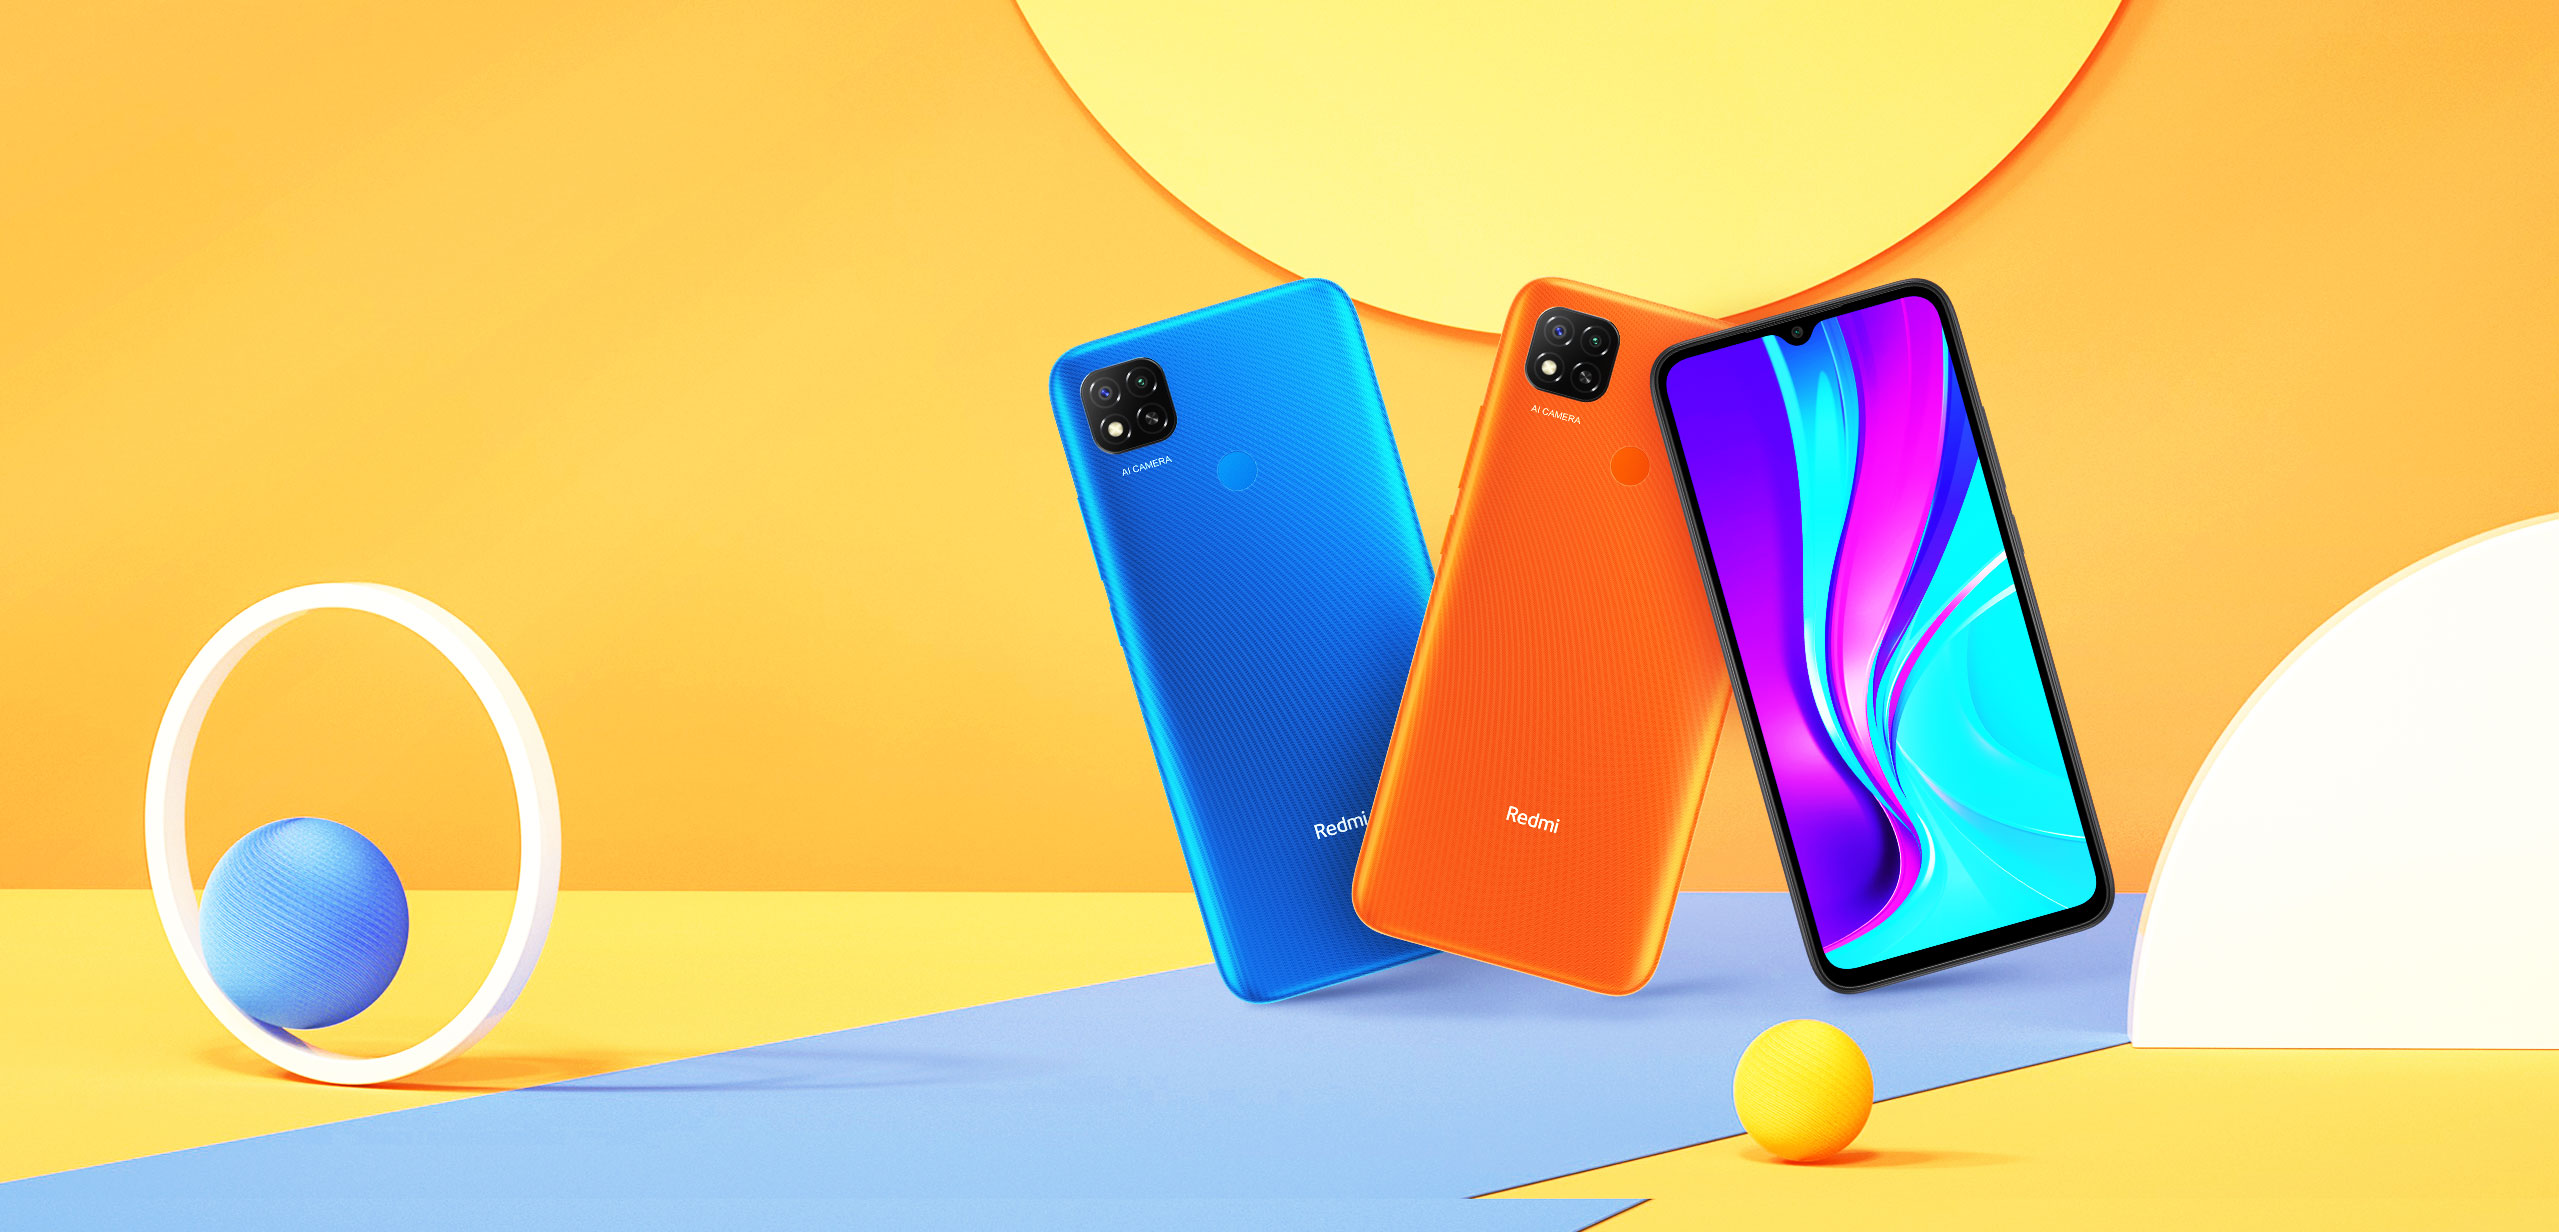 https://i01.appmifile.com/webfile/globalimg/products/pc/redmi-9c-in/index-01.jpg